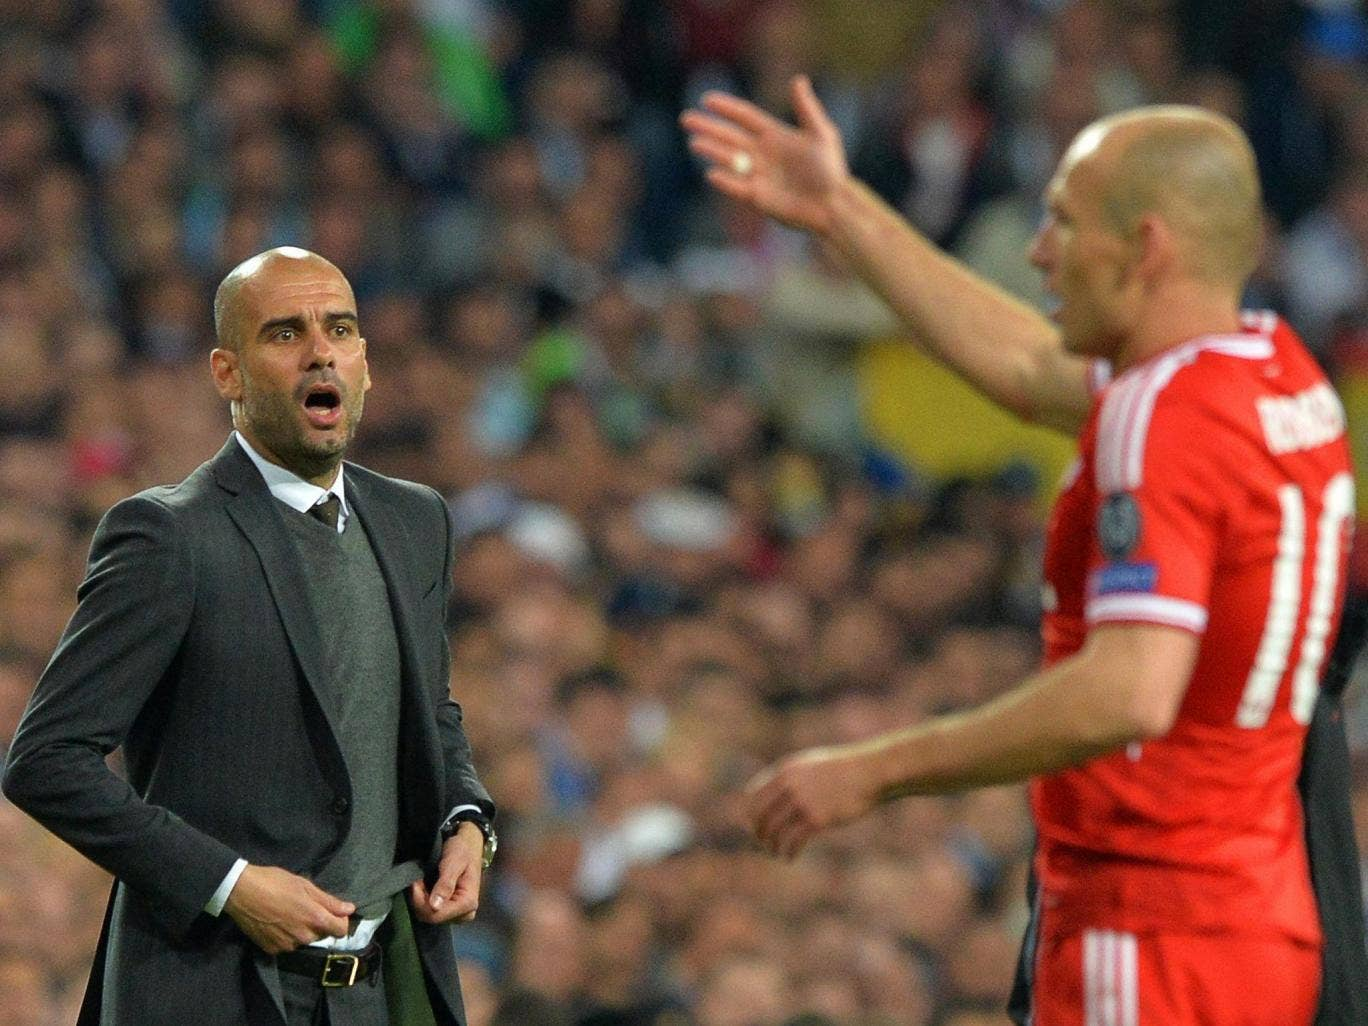 Pep Guardiola shouts out orders to Arjen Robben during Wednesday's defeat